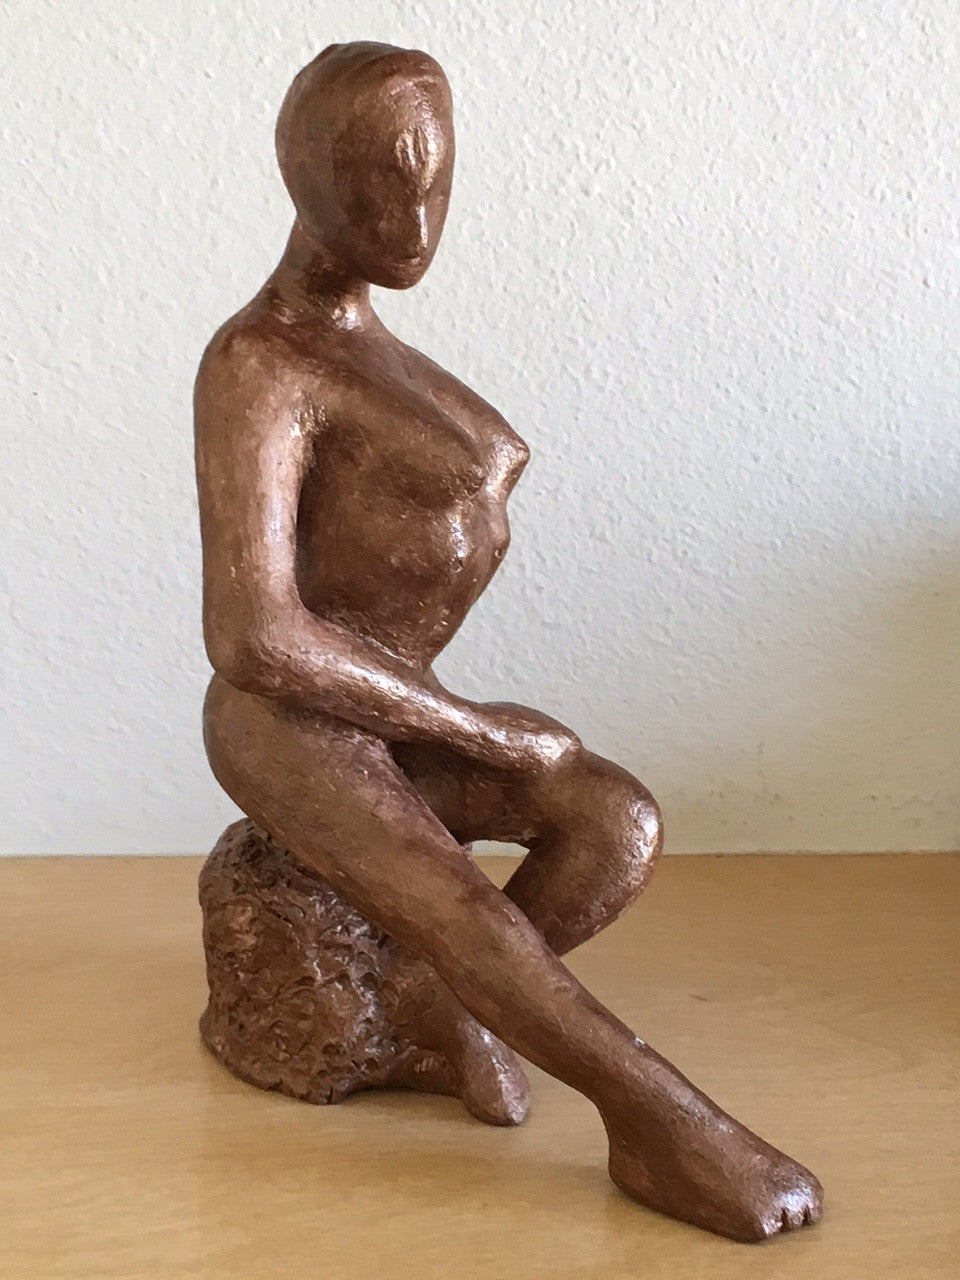 Sculpture Figurine Clay Statue Art Figurative Artwork Handmade